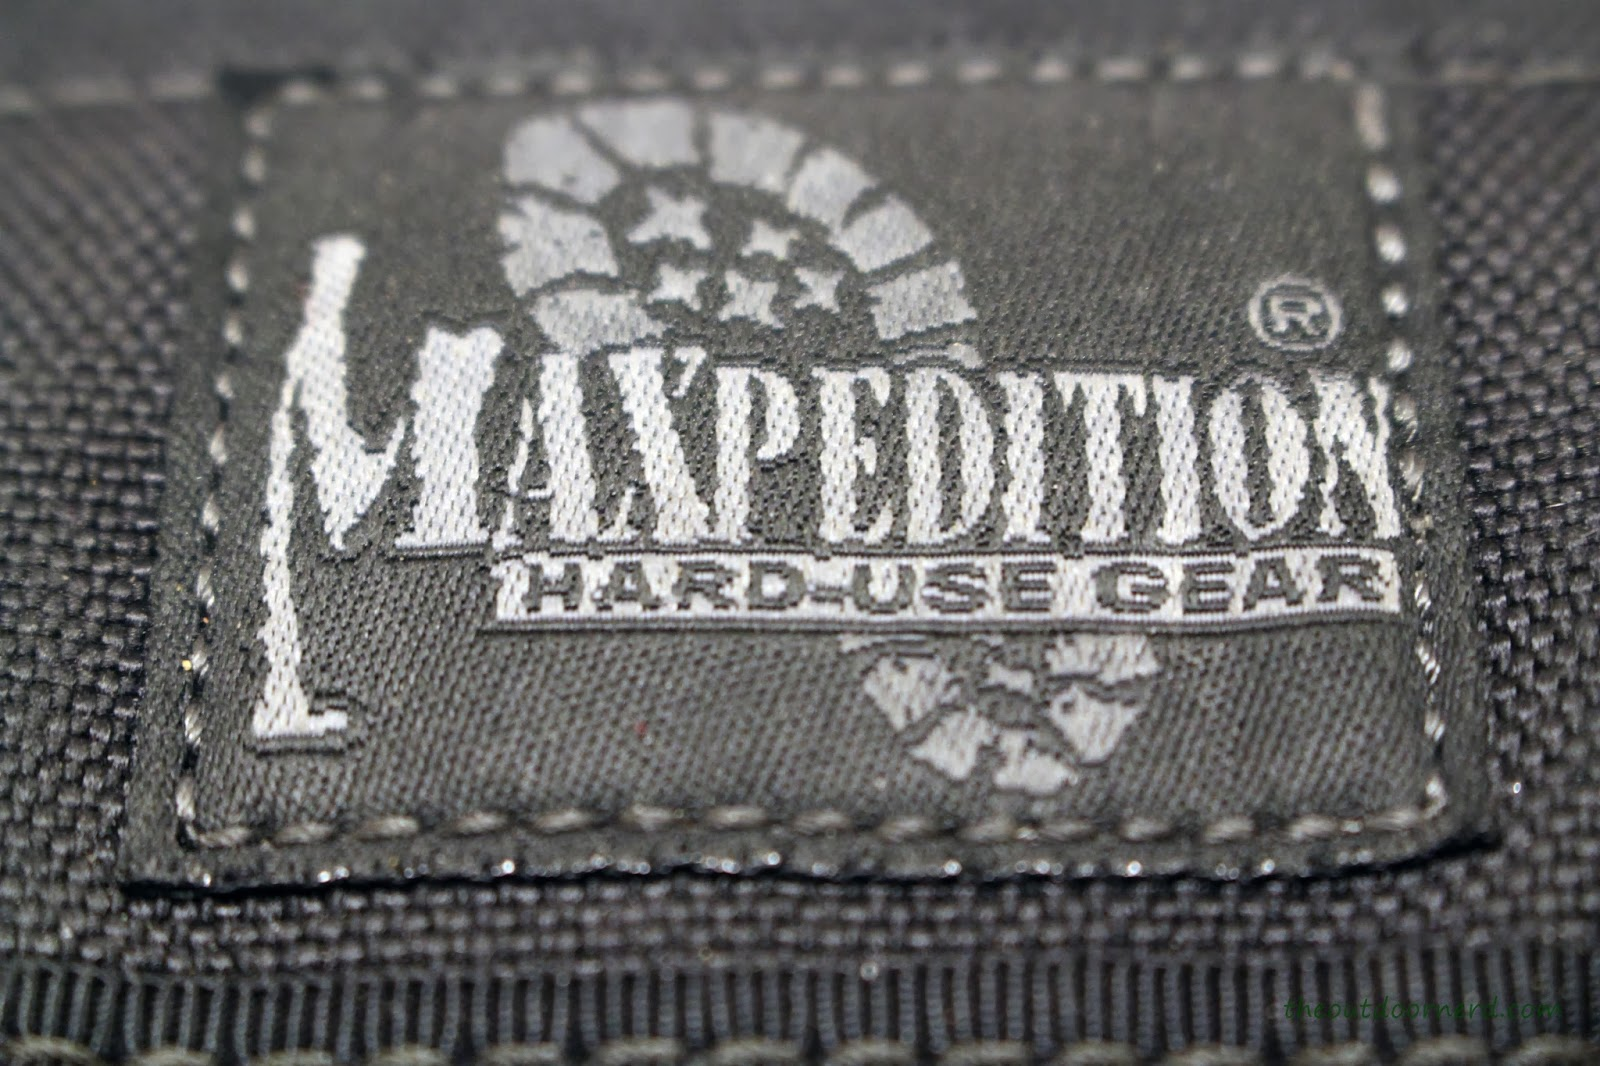 Maxpedition C.M.C Wallet - Hard Use Gear Tag